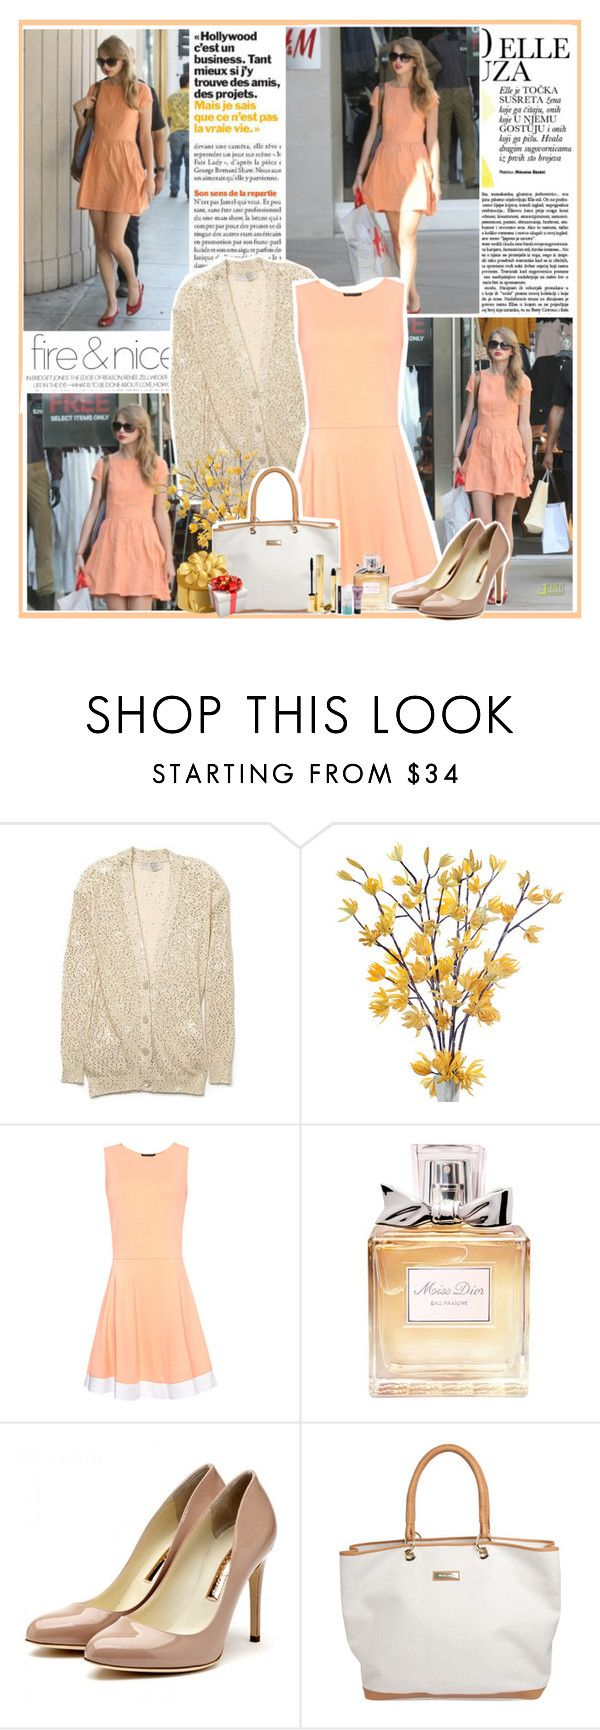 """#20 Shopping for birthday presents for your little brother"" by jesscullenbass ❤ liked on Polyvore featuring STELLA McCARTNEY, MANGO, Christian Dior, Rupert Sanderson, Yves Saint Laurent and taylor swift"